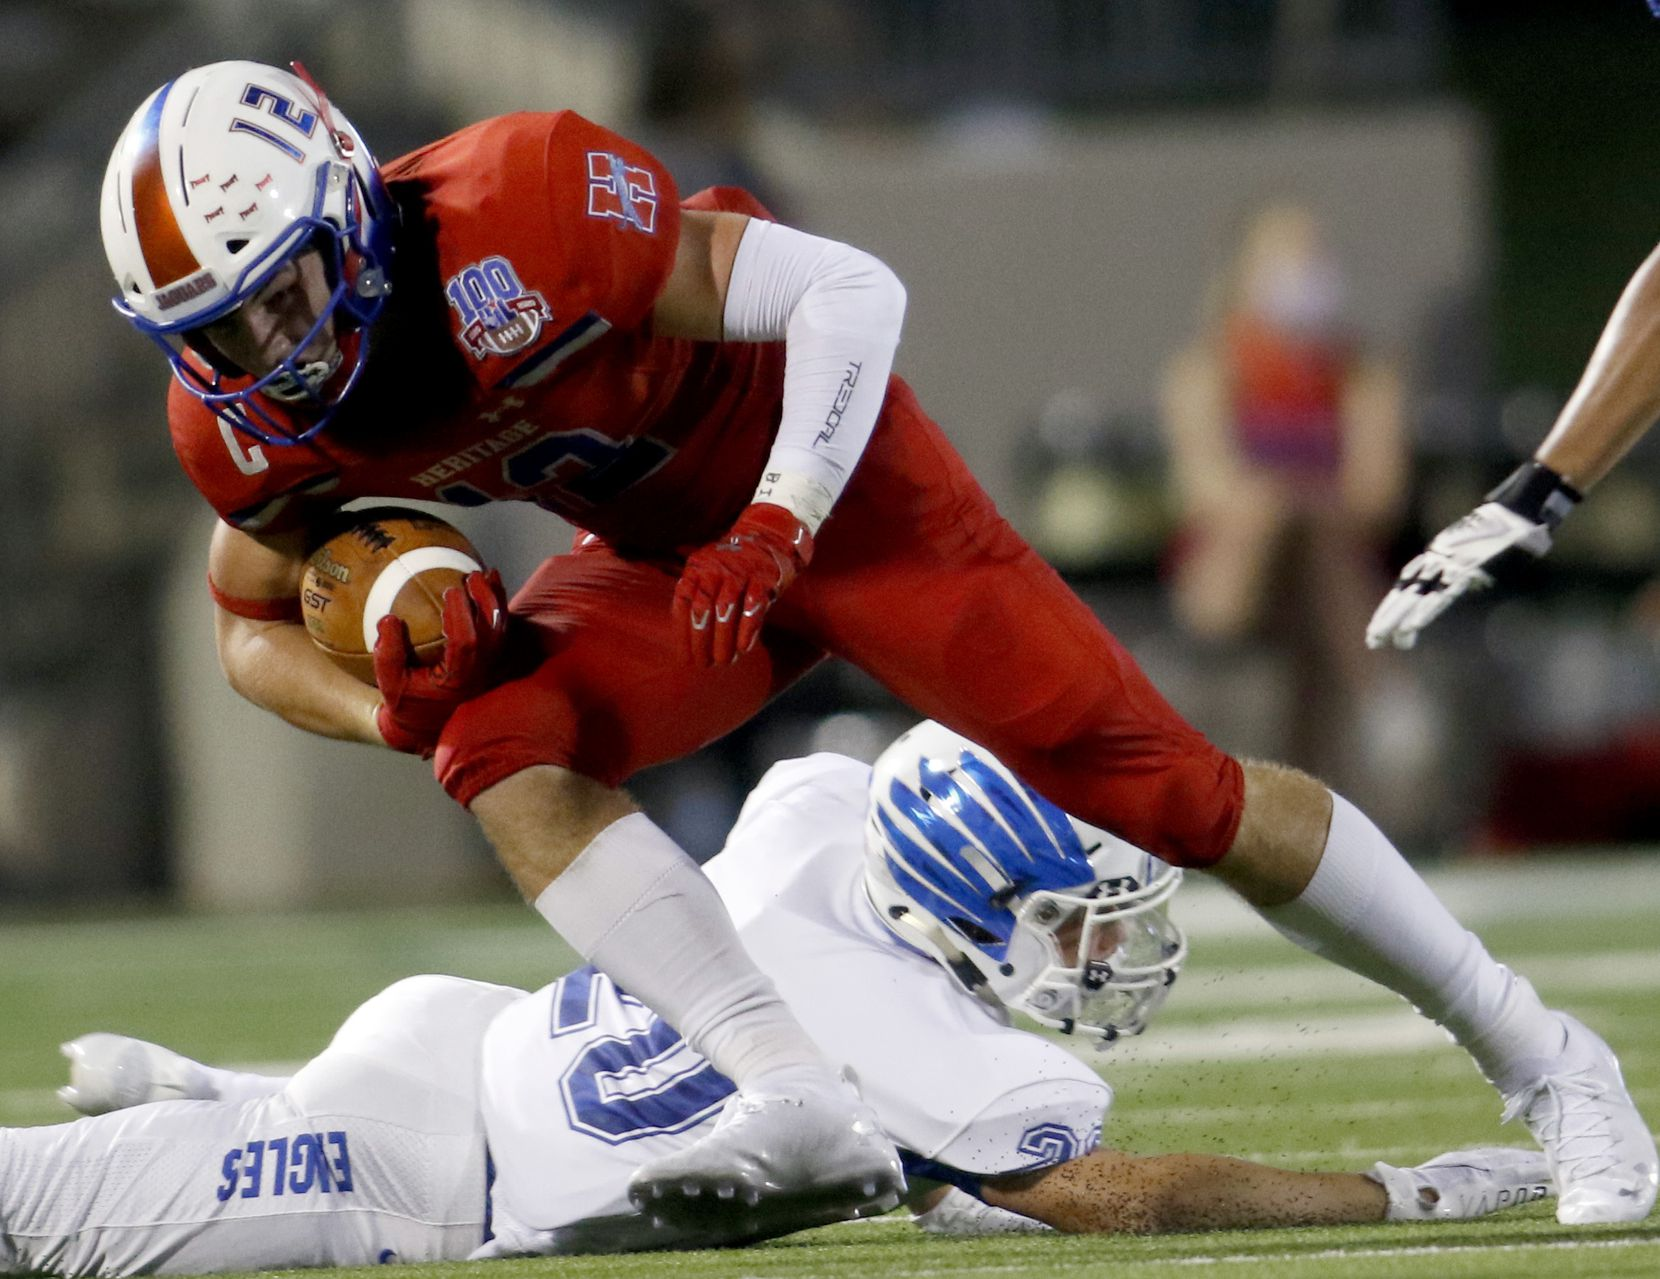 Midlothian Heritage receiver Haydon Wigginton (12) lunges for extra yardage as he side steps a Lindale defender following a second half reception. The two teams played their Class 4A football game at Midlothian ISD Multipurpose Stadium in Midlothian on September 4, 2020. (Steve Hamm/ Special Contributor)